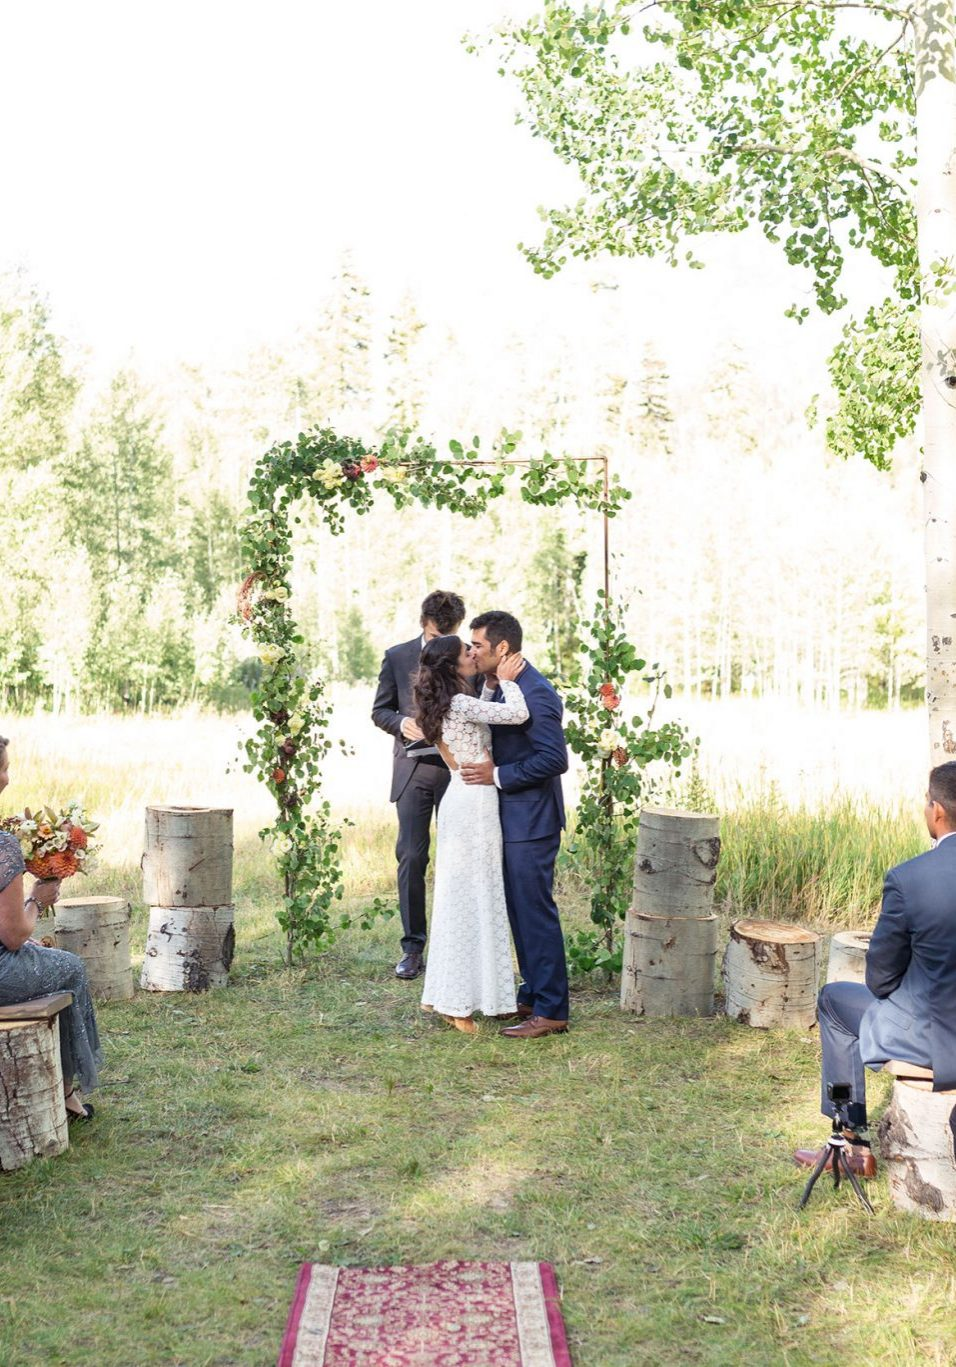 Mountain Ceremony at Silverpick Lodge, Durango, Colorado